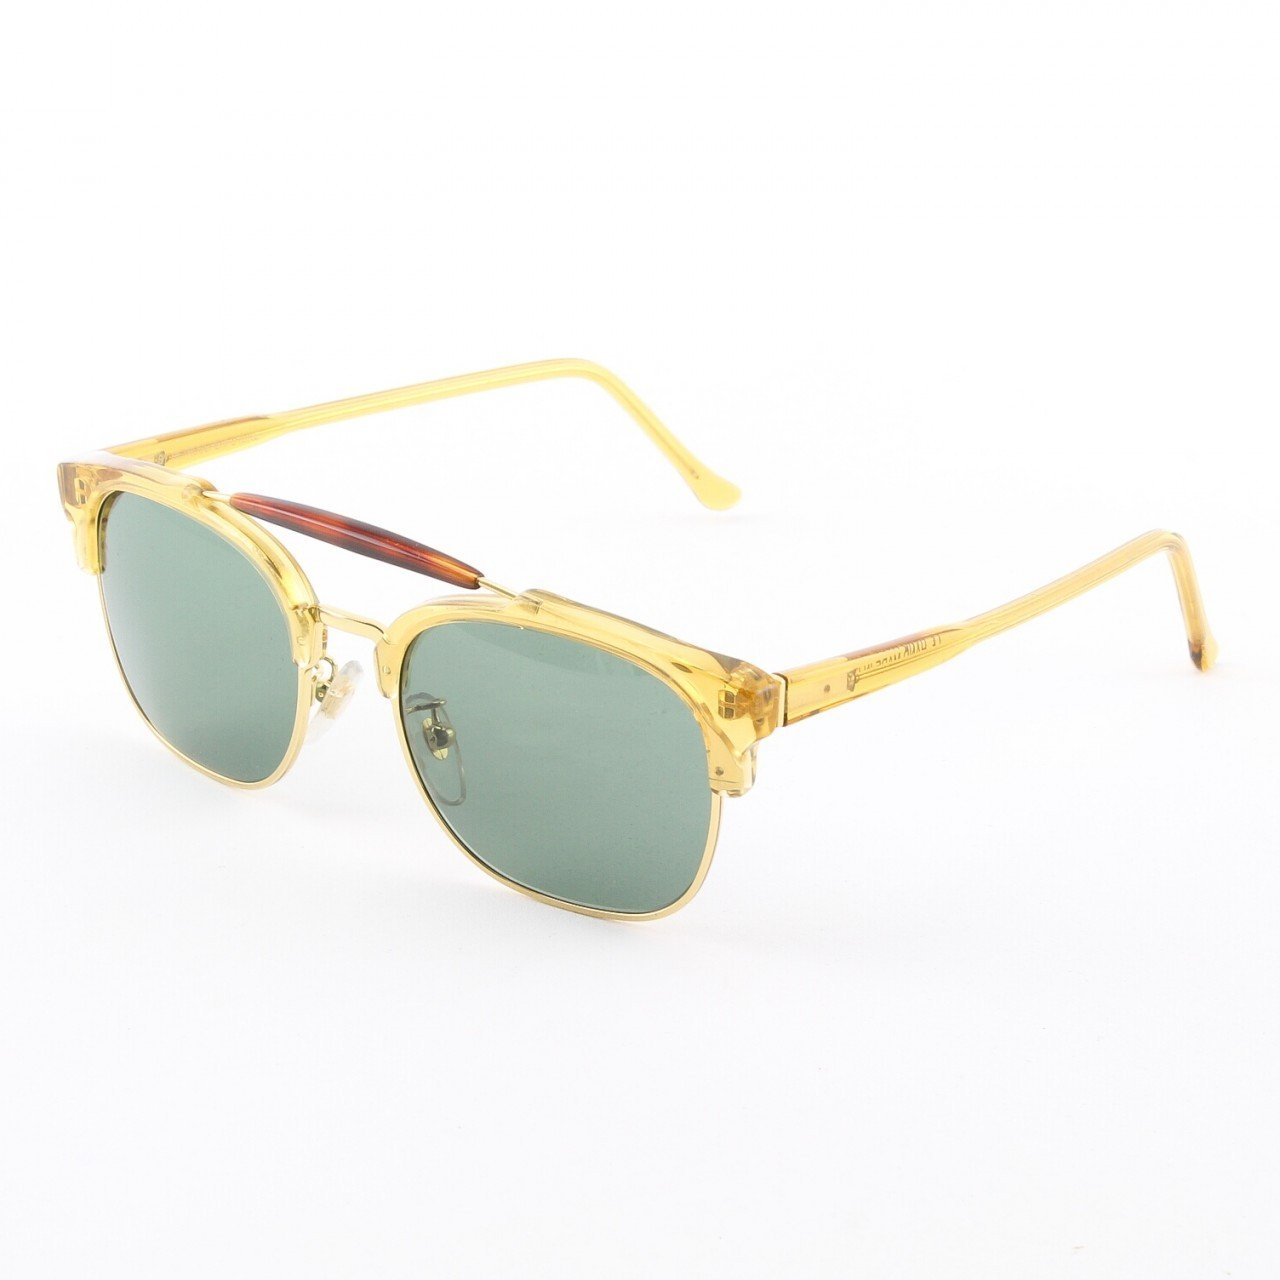 Super 49ers 882/2A Sunglasses Yellow Gold Brown Havana with Green Zeiss Lenses by RETROSUPERFUTURE